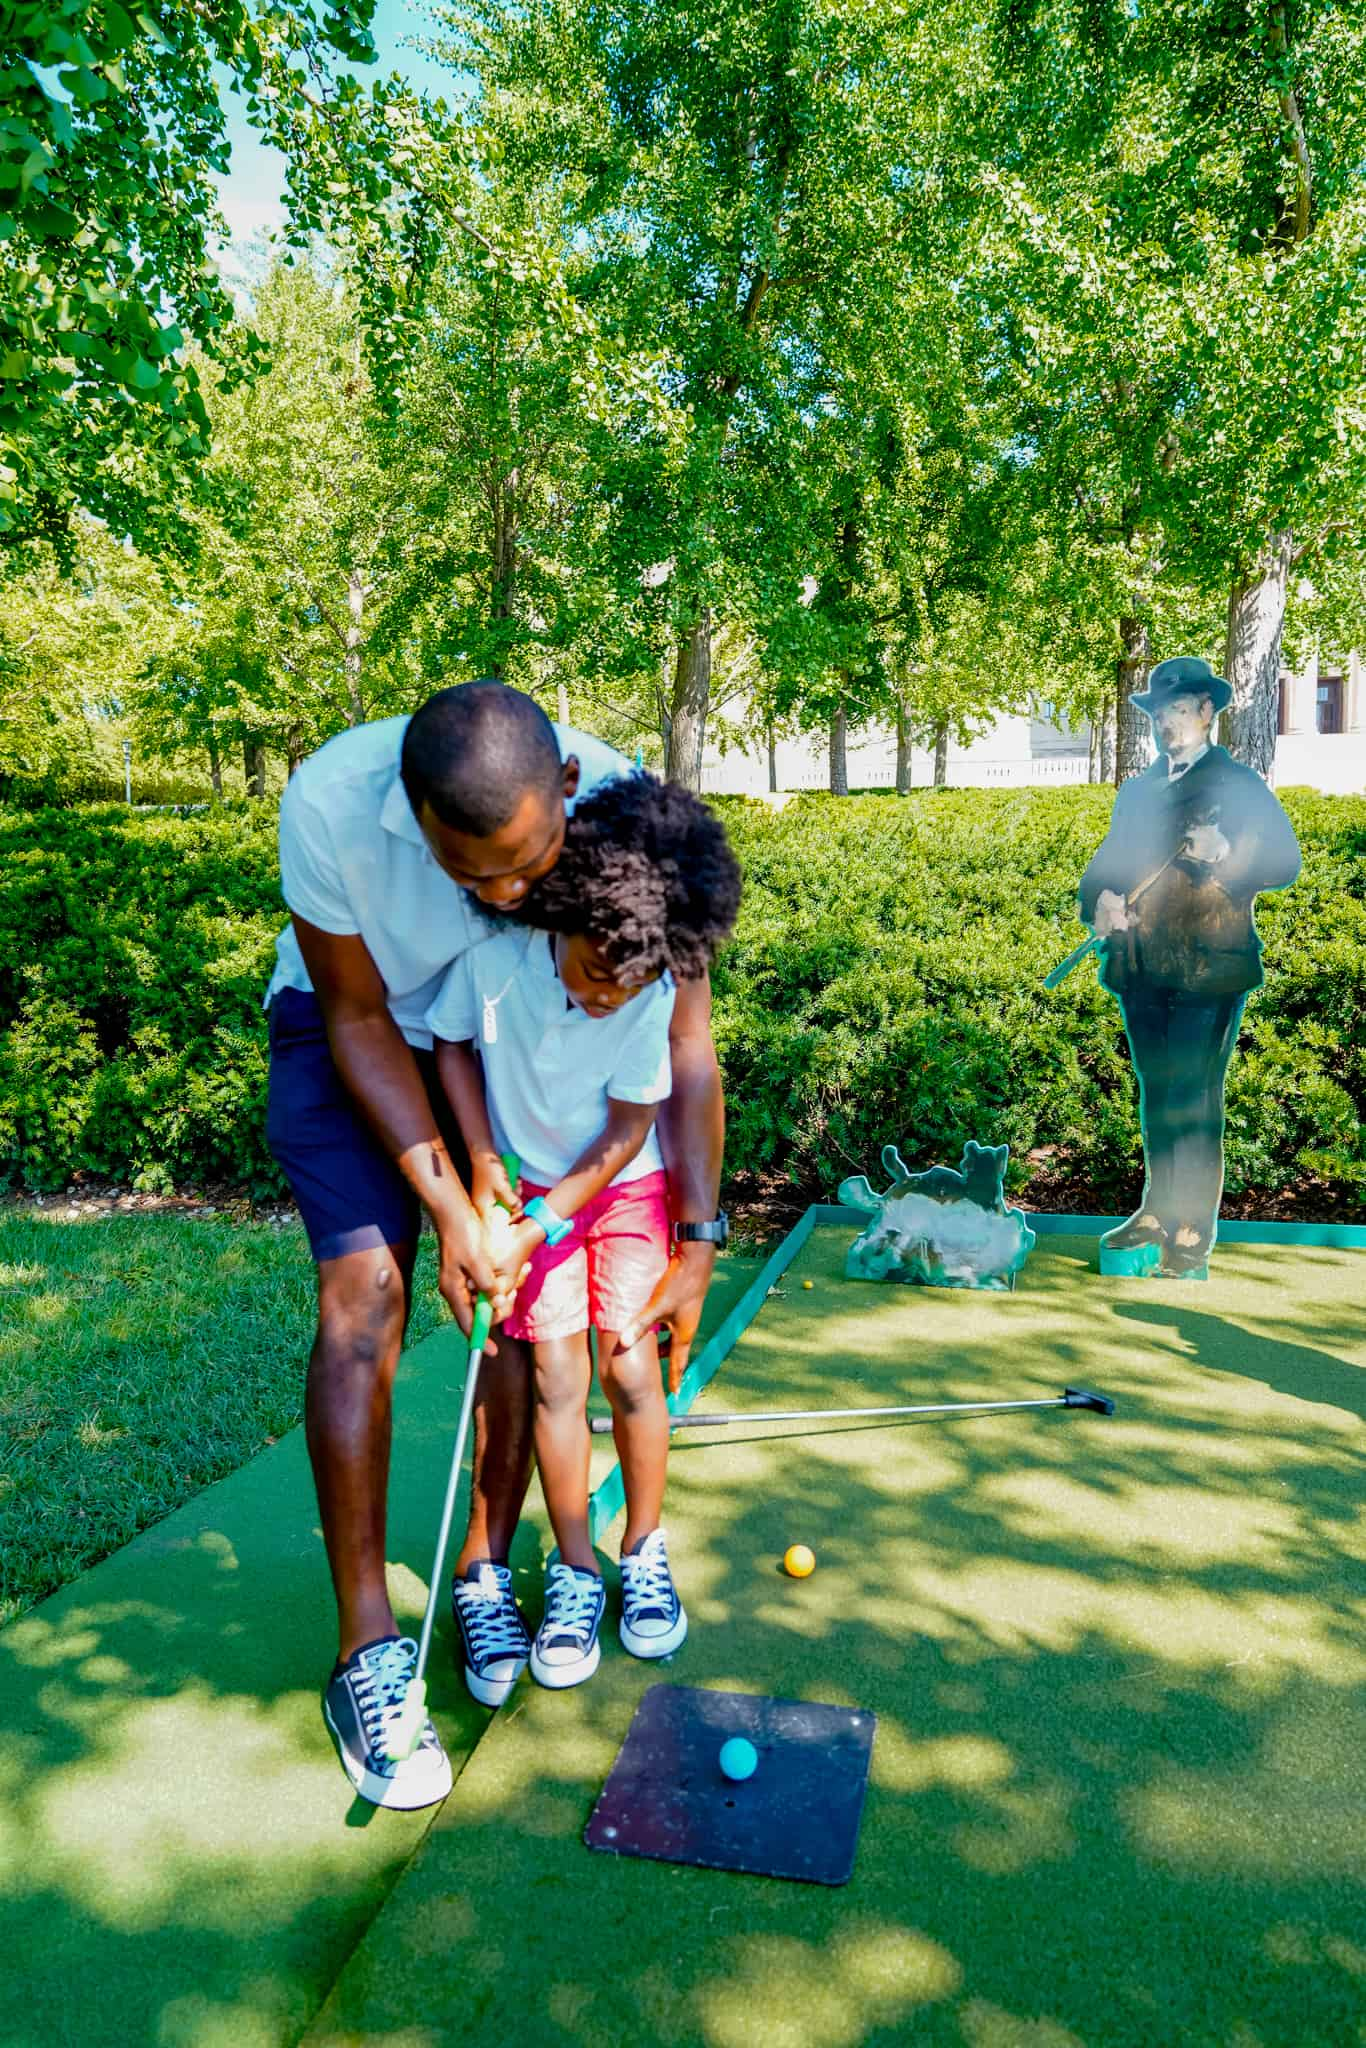 enjoying tee time with kids